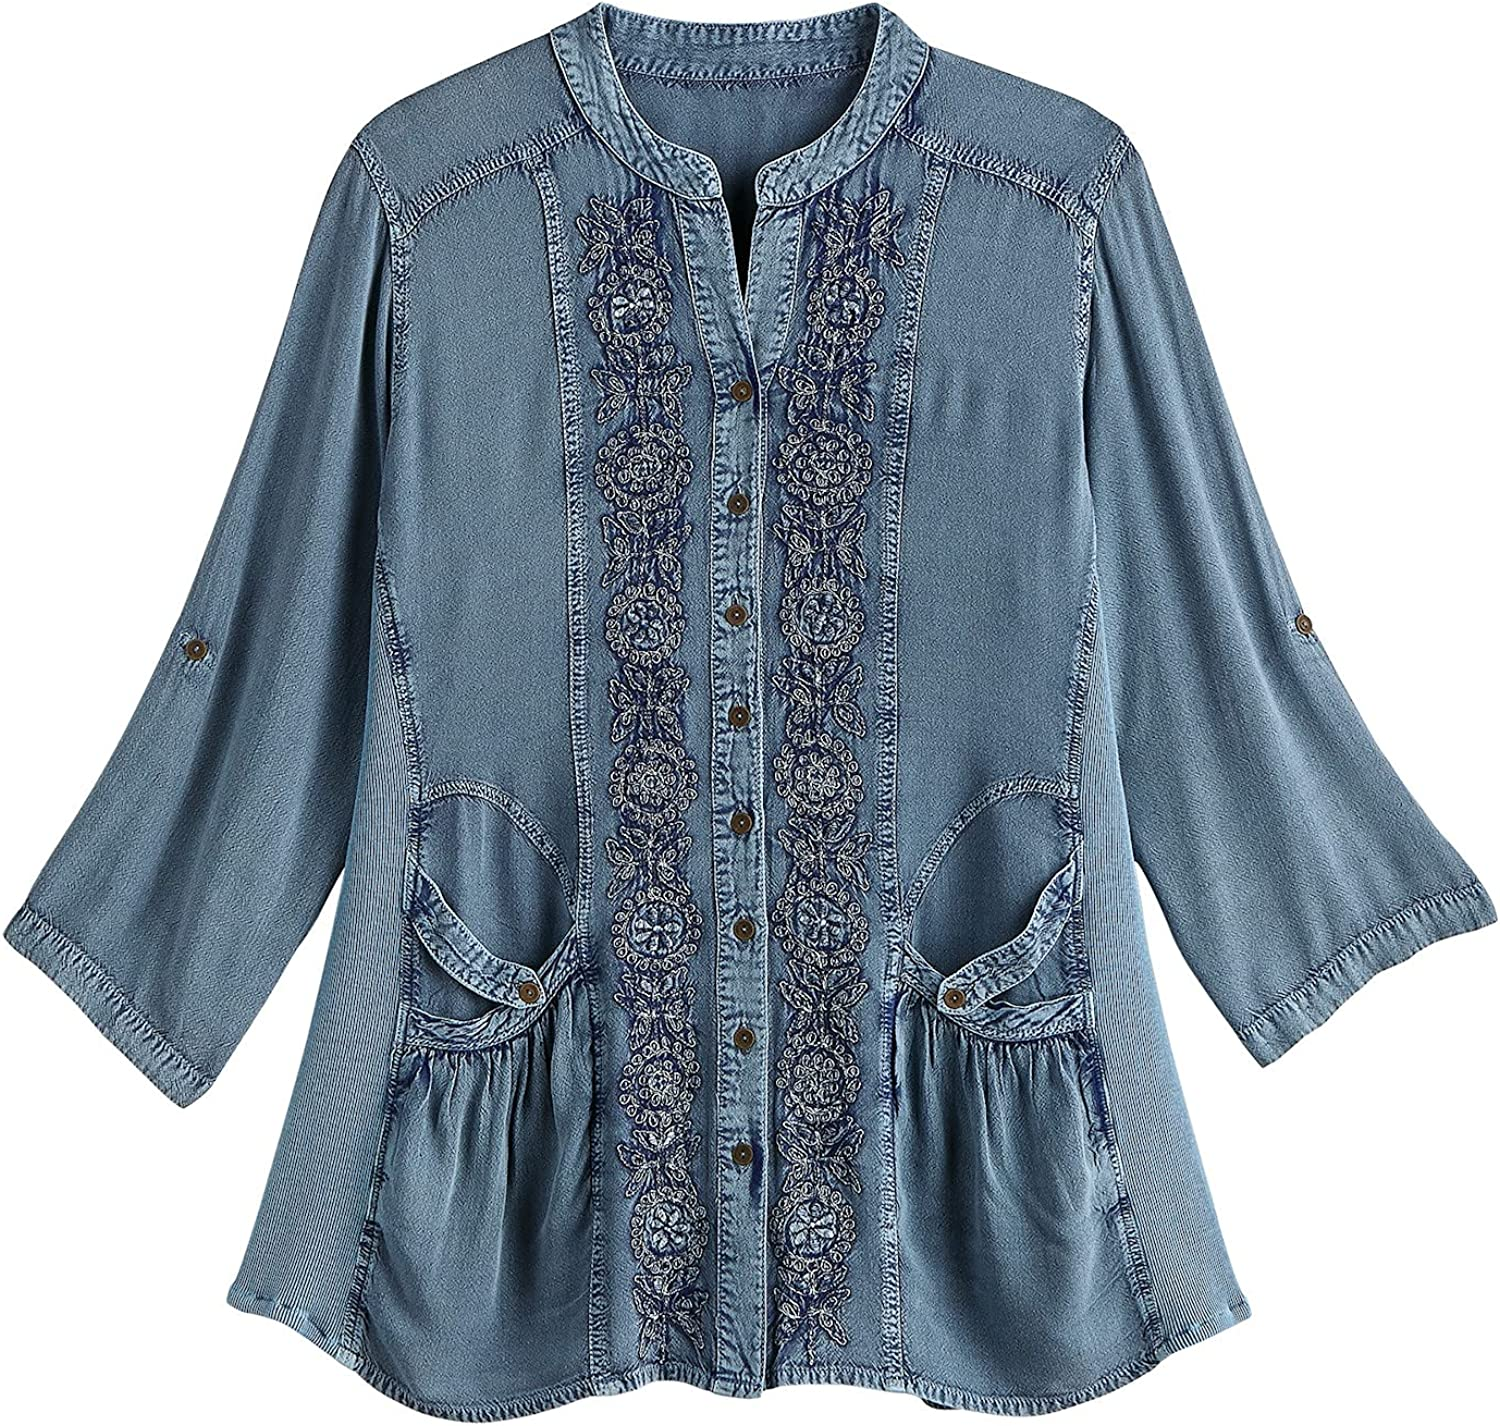 FLORIANA Women's Floral Max 55% OFF Embroidered Tunic Fixed price for sale Top Enzyme Wash Finis